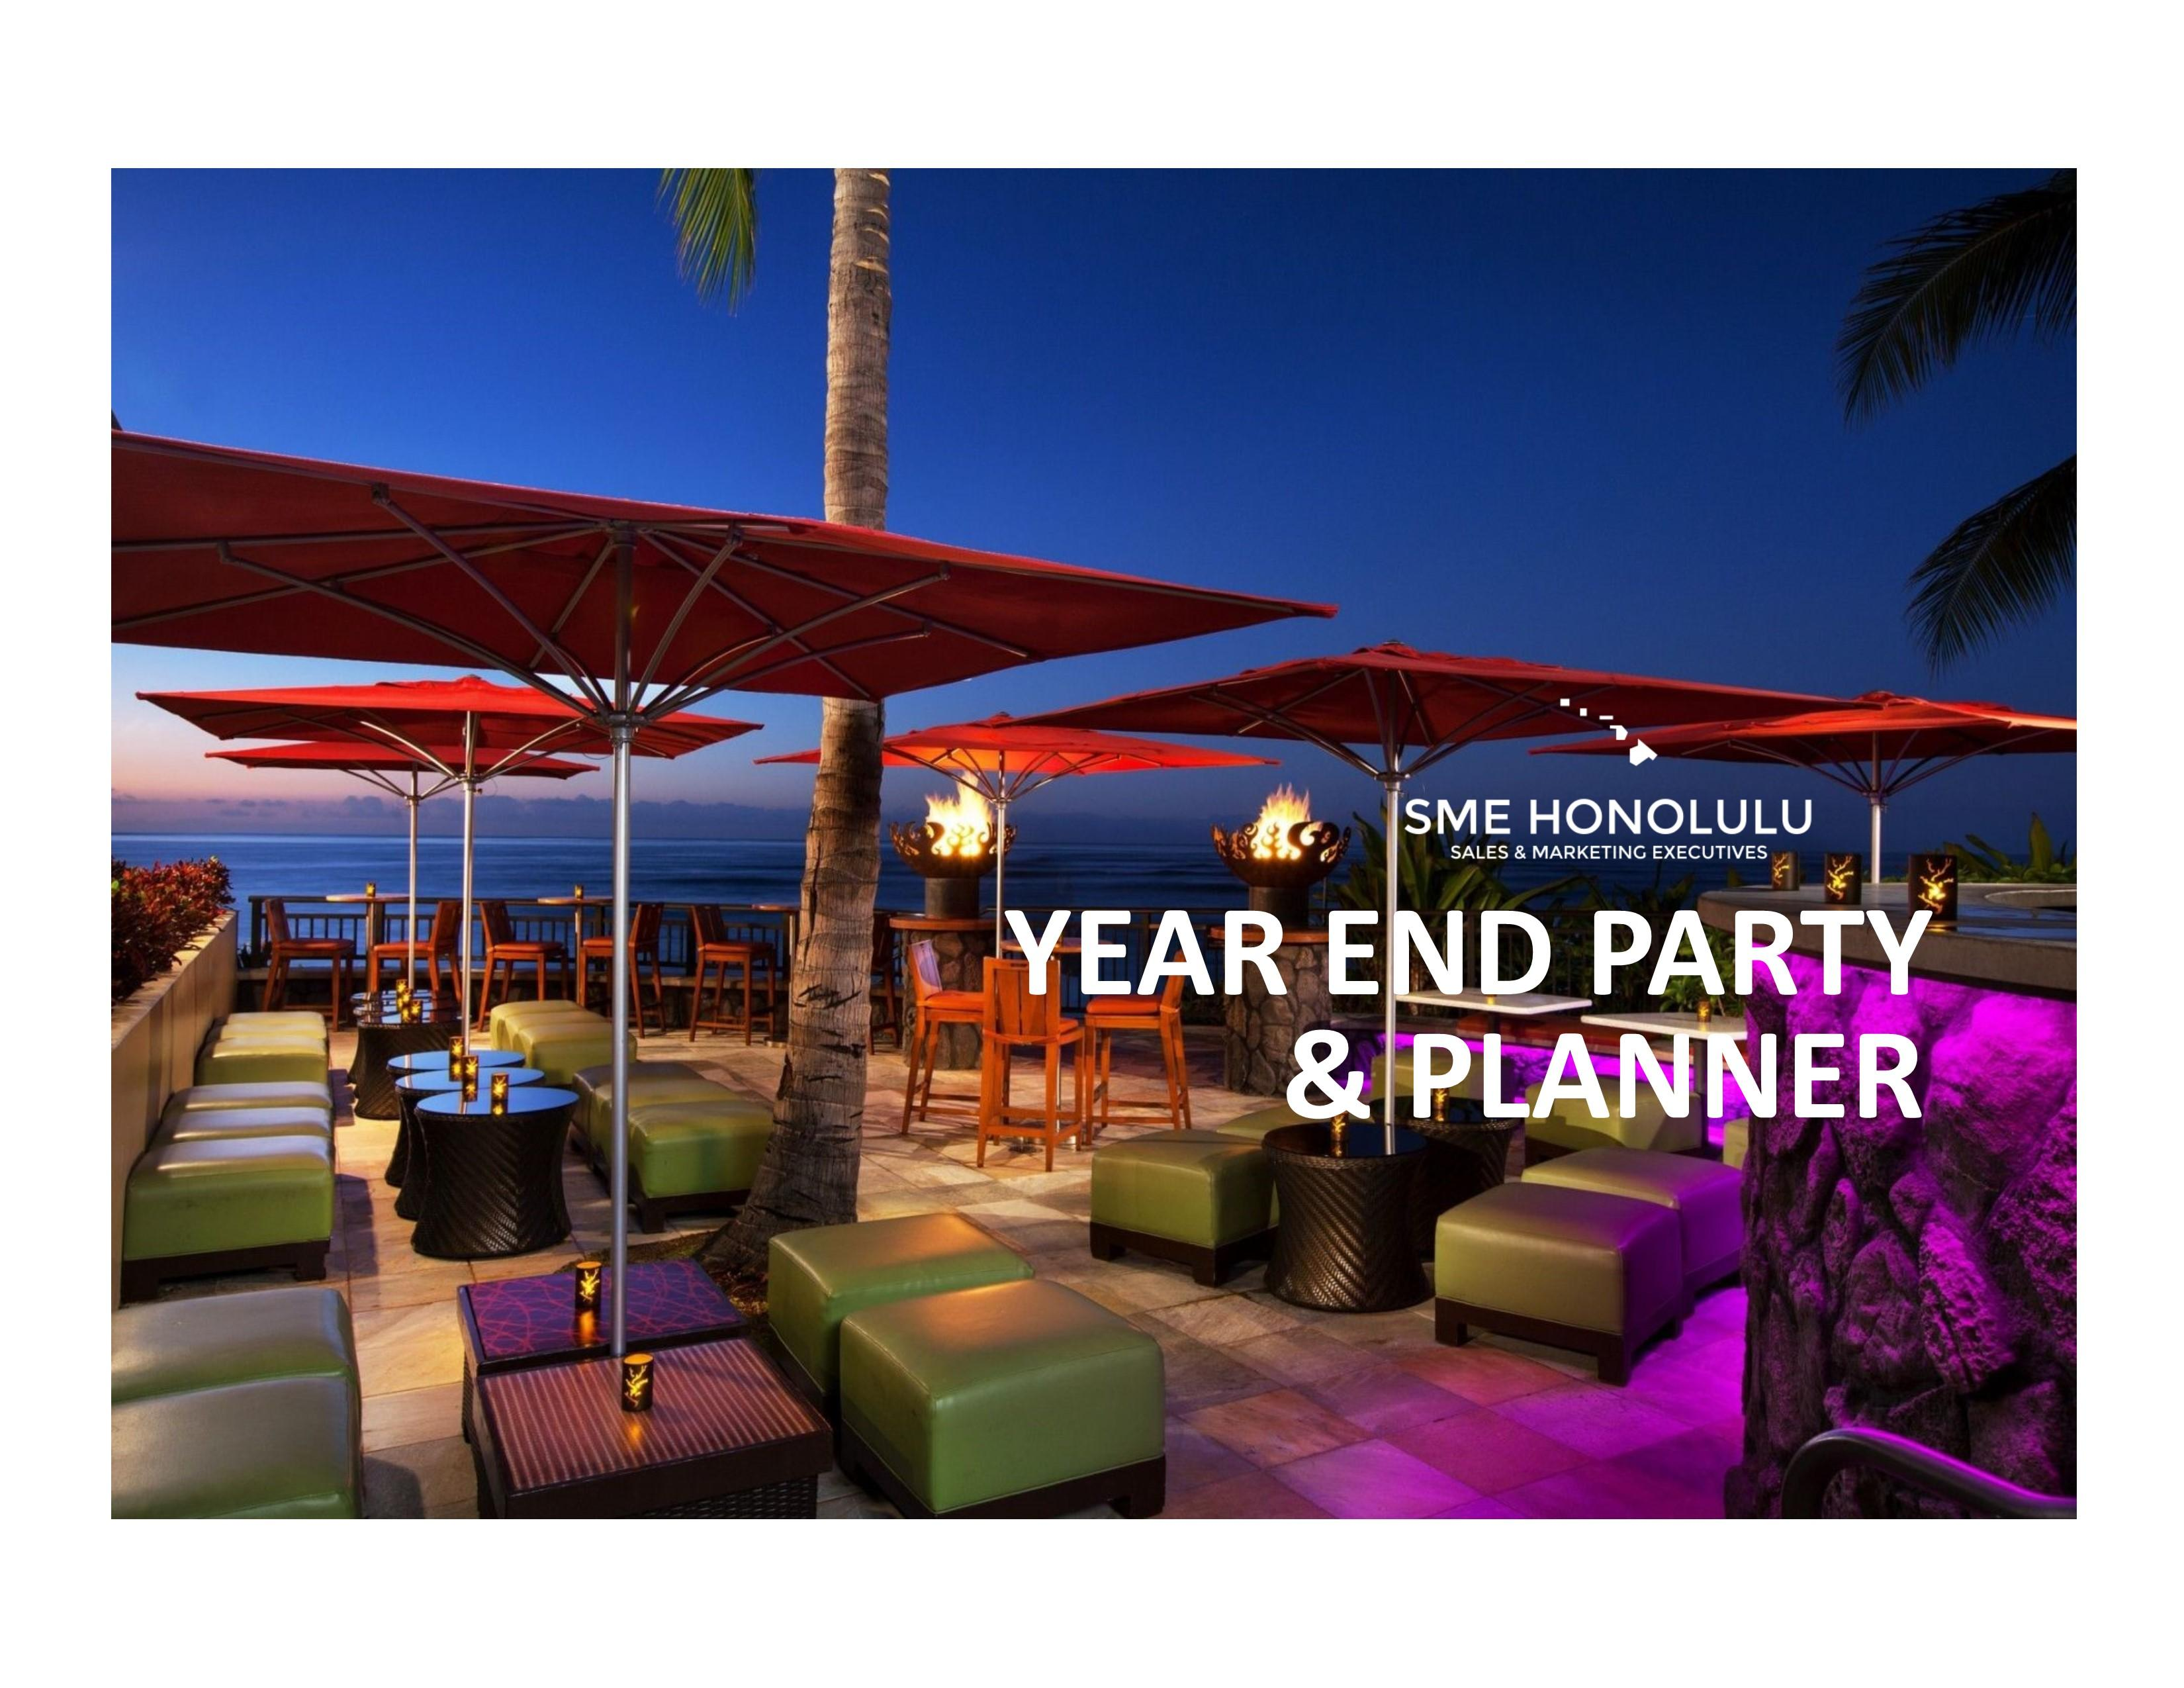 Year-End Party & Planner: An SME cocktail eve